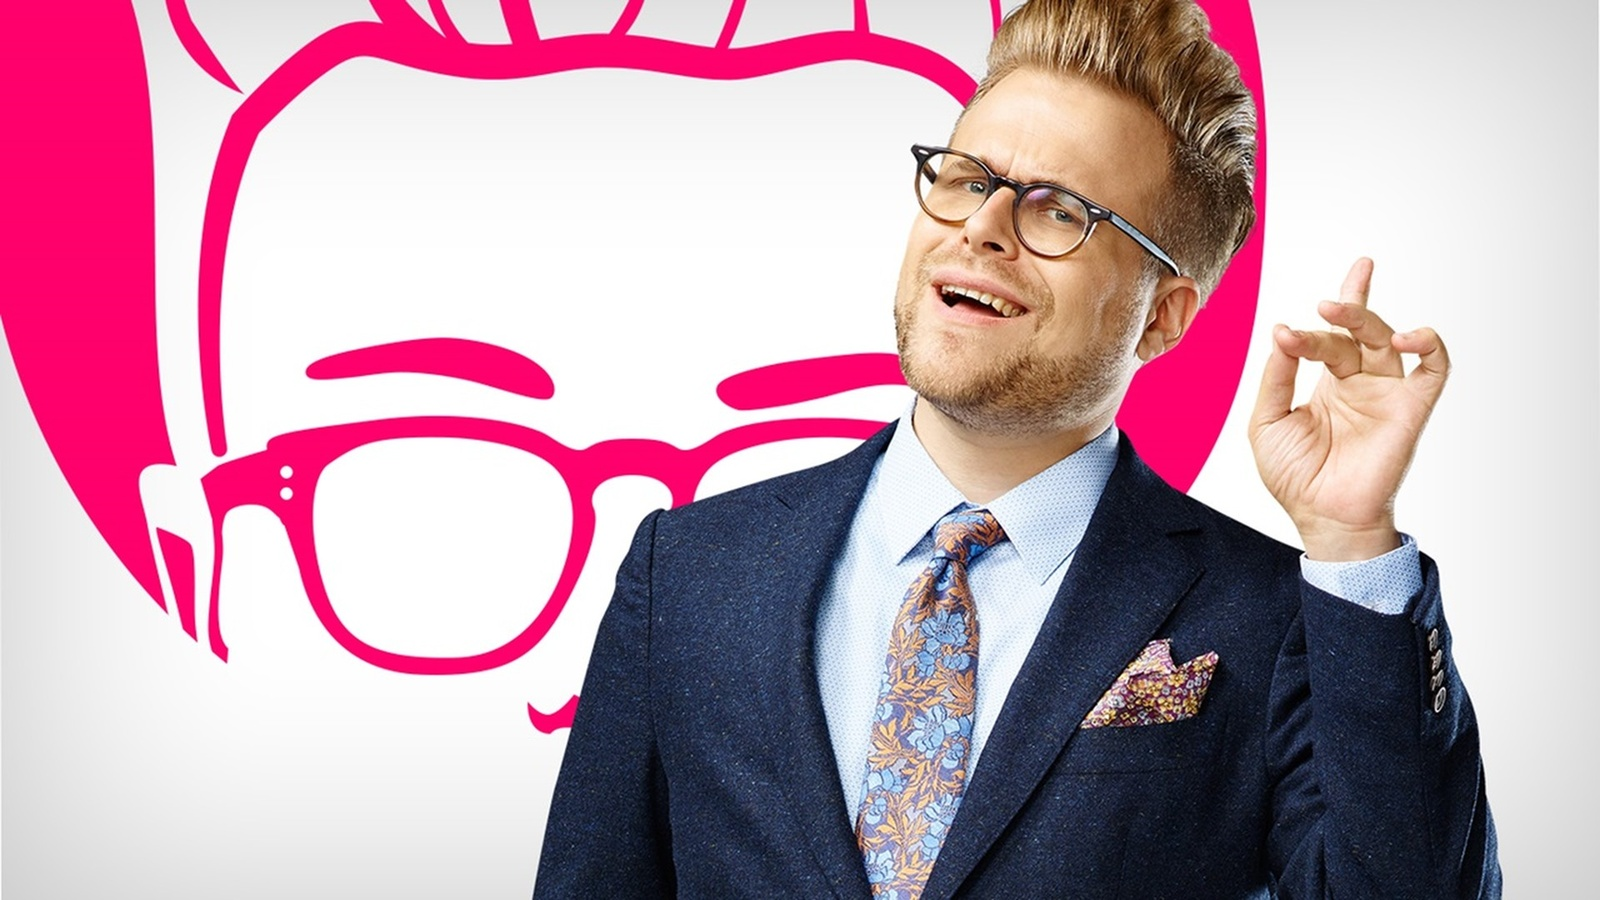 Адам портит всё / Adam Ruins Everything background